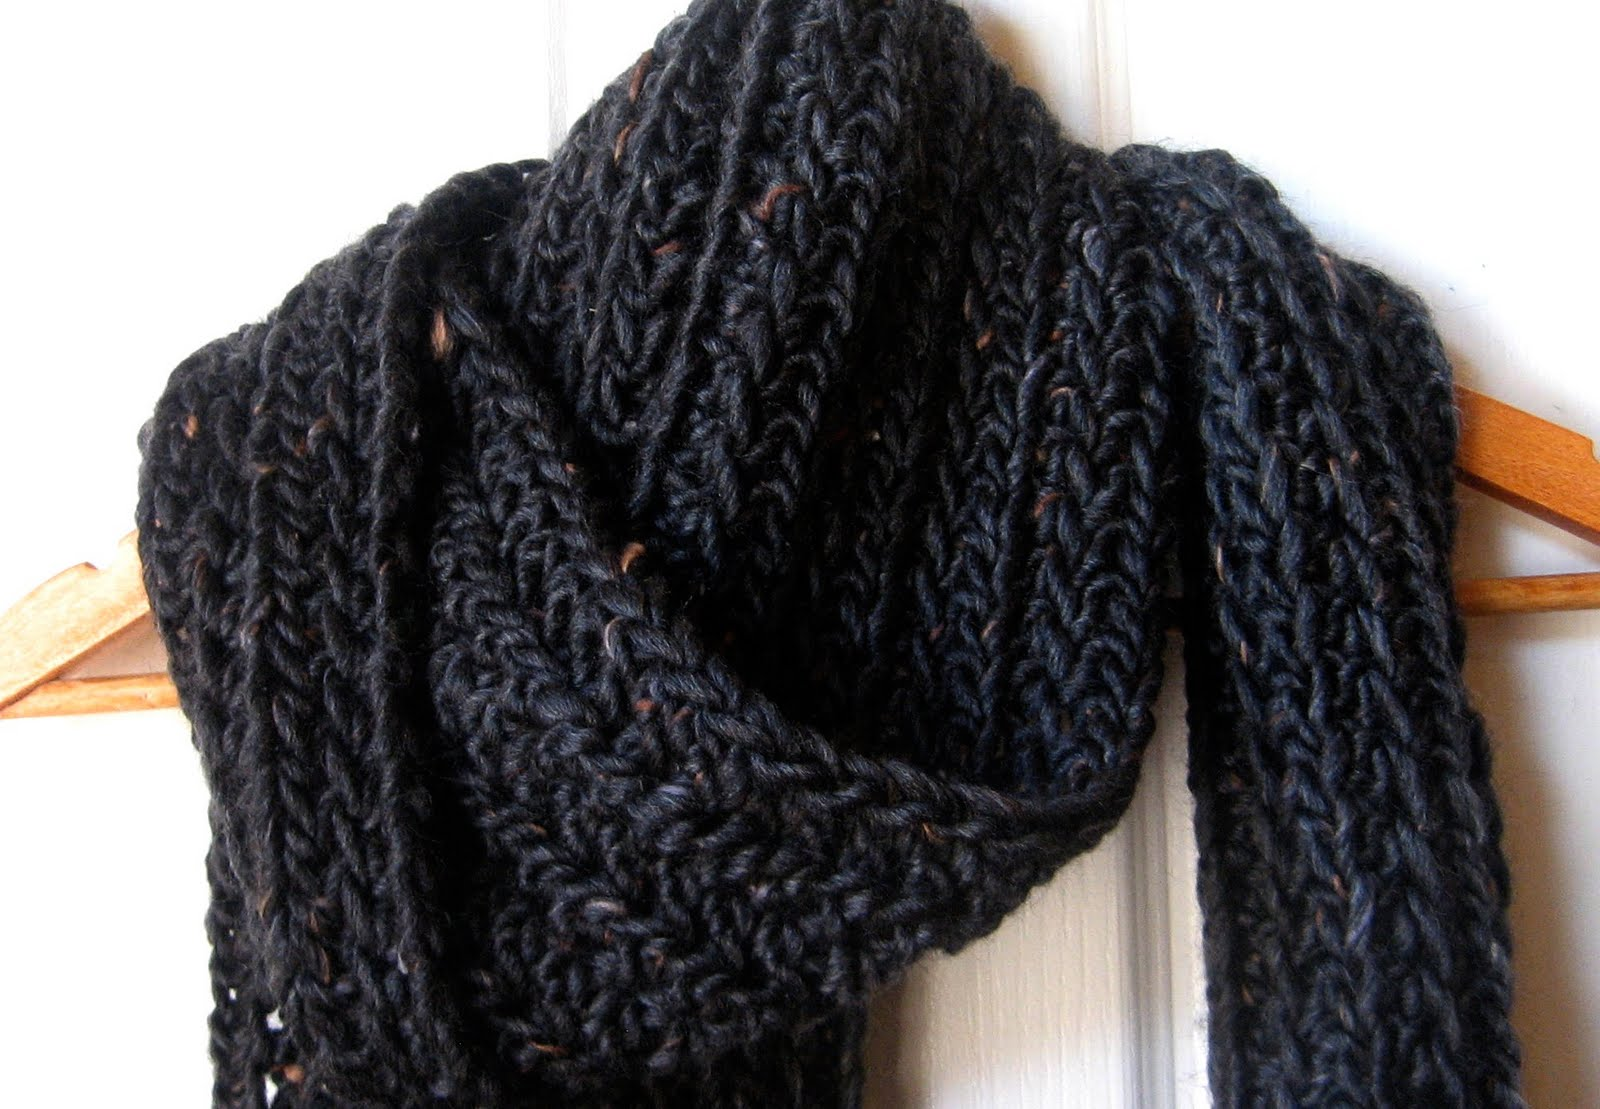 Free Crochet Patterns For A Man s Scarf : Mel P Designs: Free Crochet Scarf Pattern